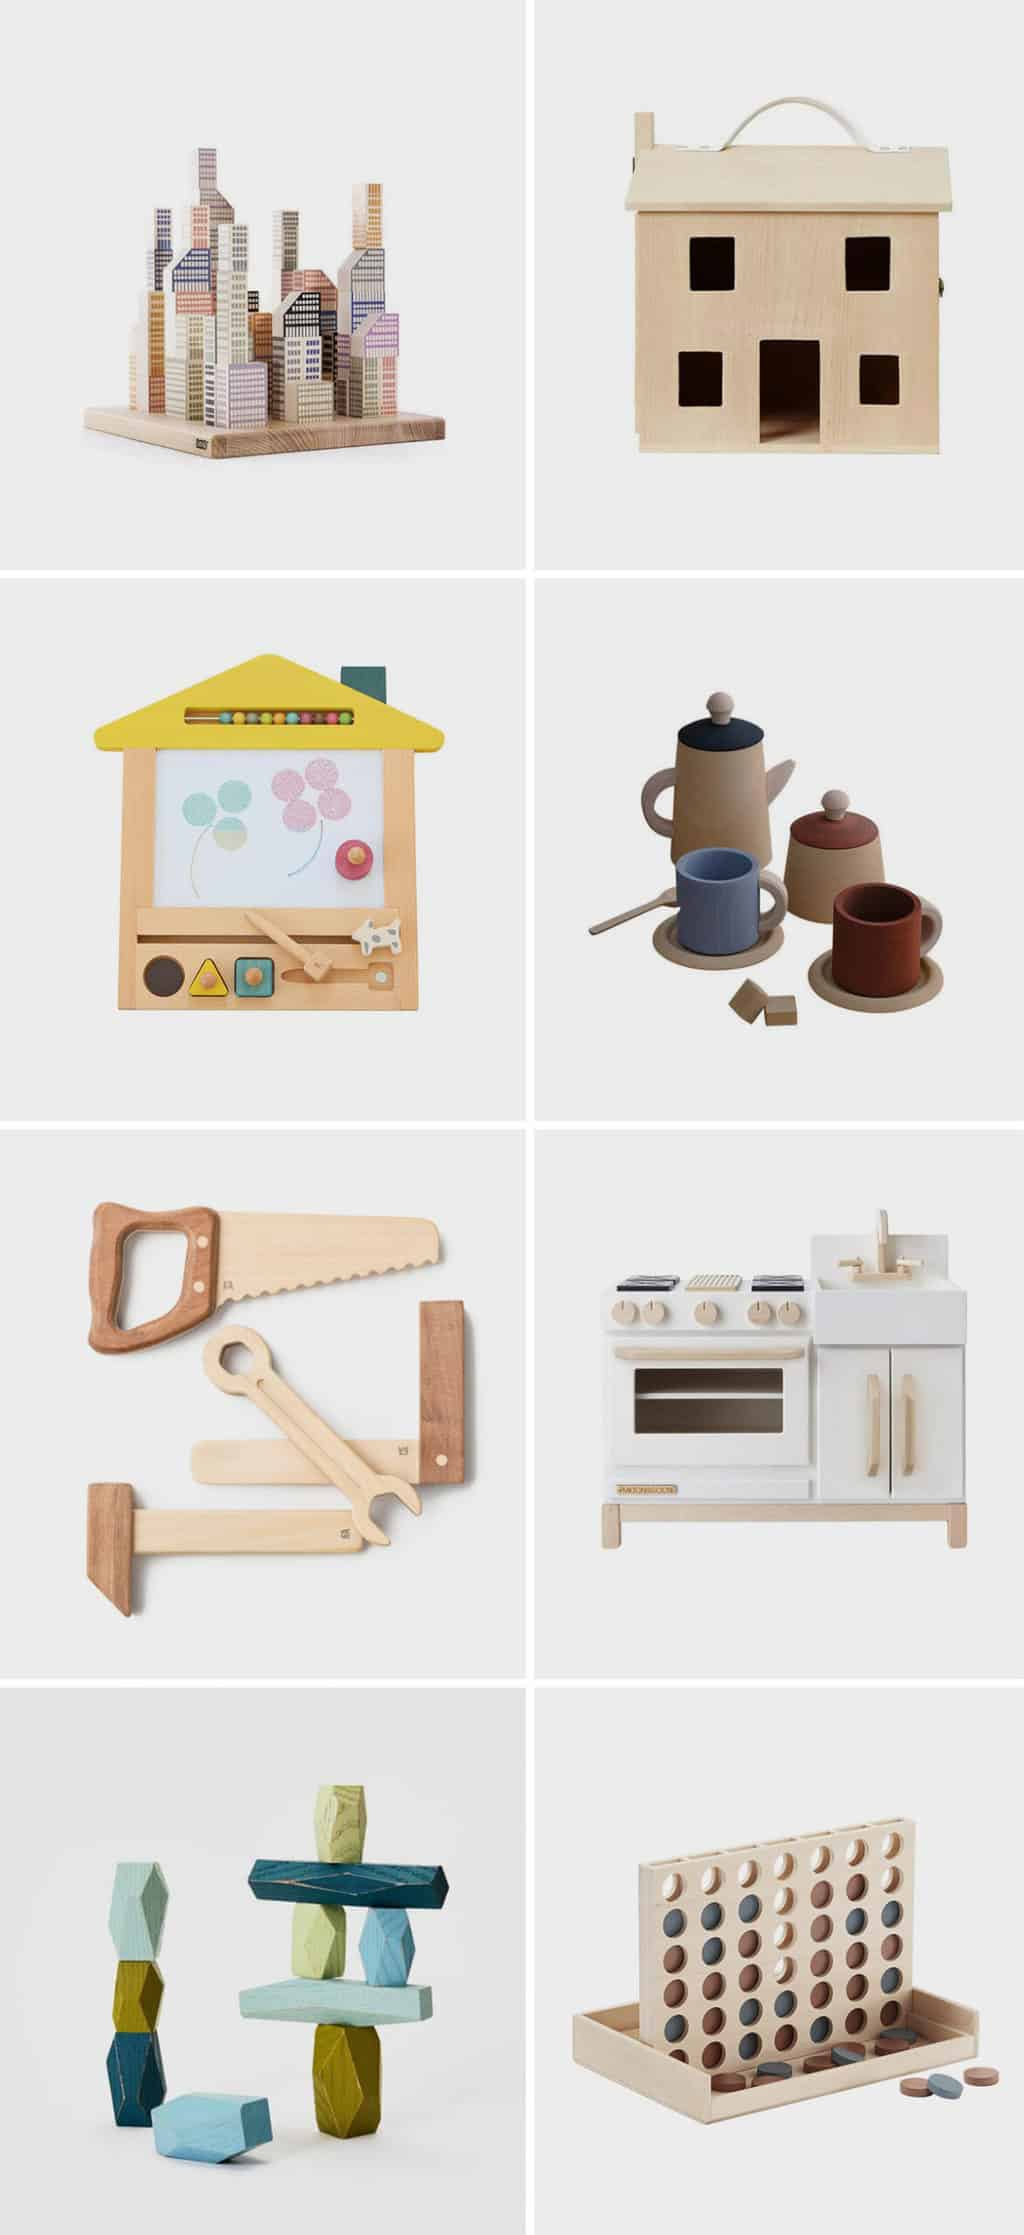 Image of various wooden toys for kids, featuring blocks, a dollhouse, a play kitchen, wood stacking blocks, and more.